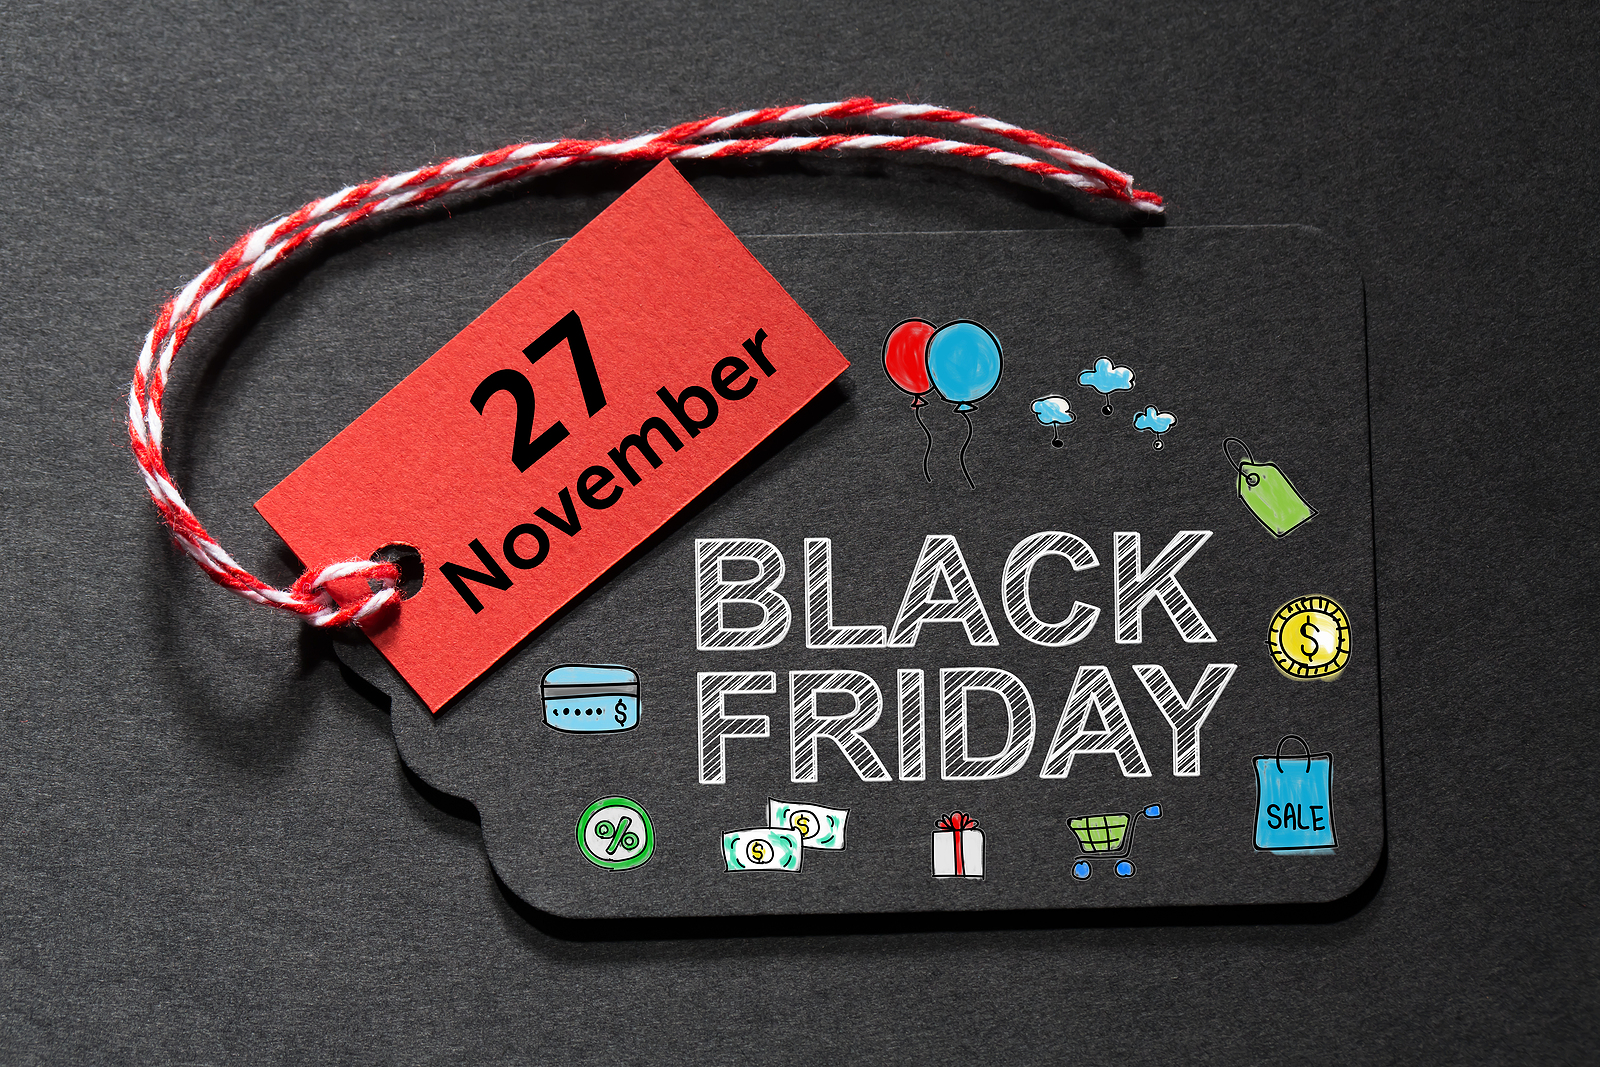 Apex Mobile Asset Management helps retailers prepare for Black Friday